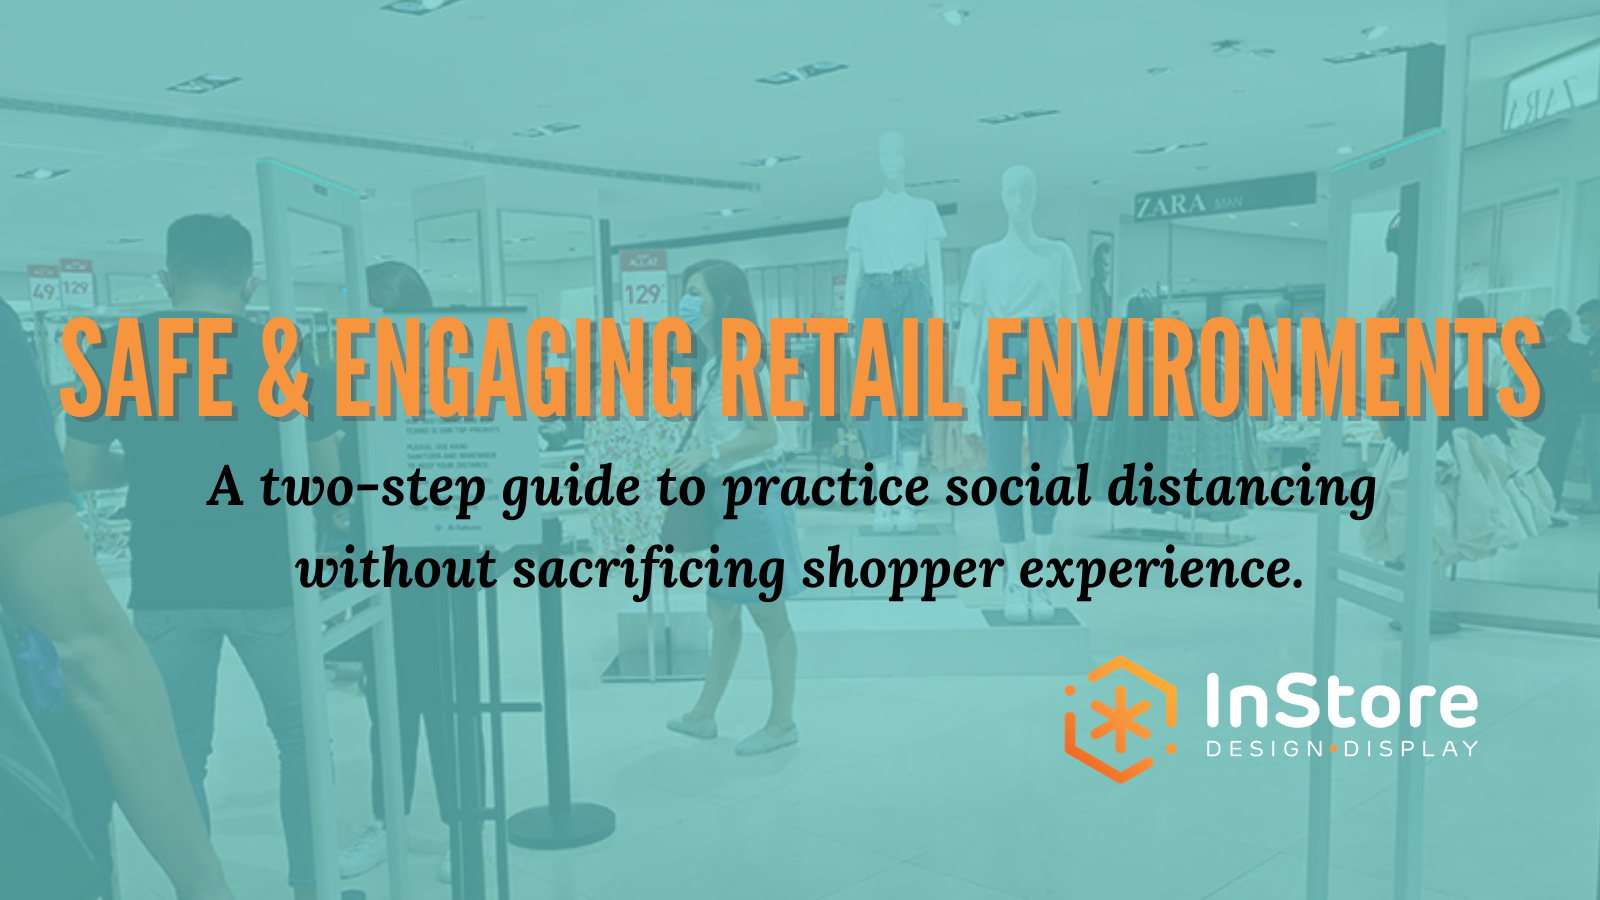 Tips for Maintaining Social Distancing in the Retail Environment